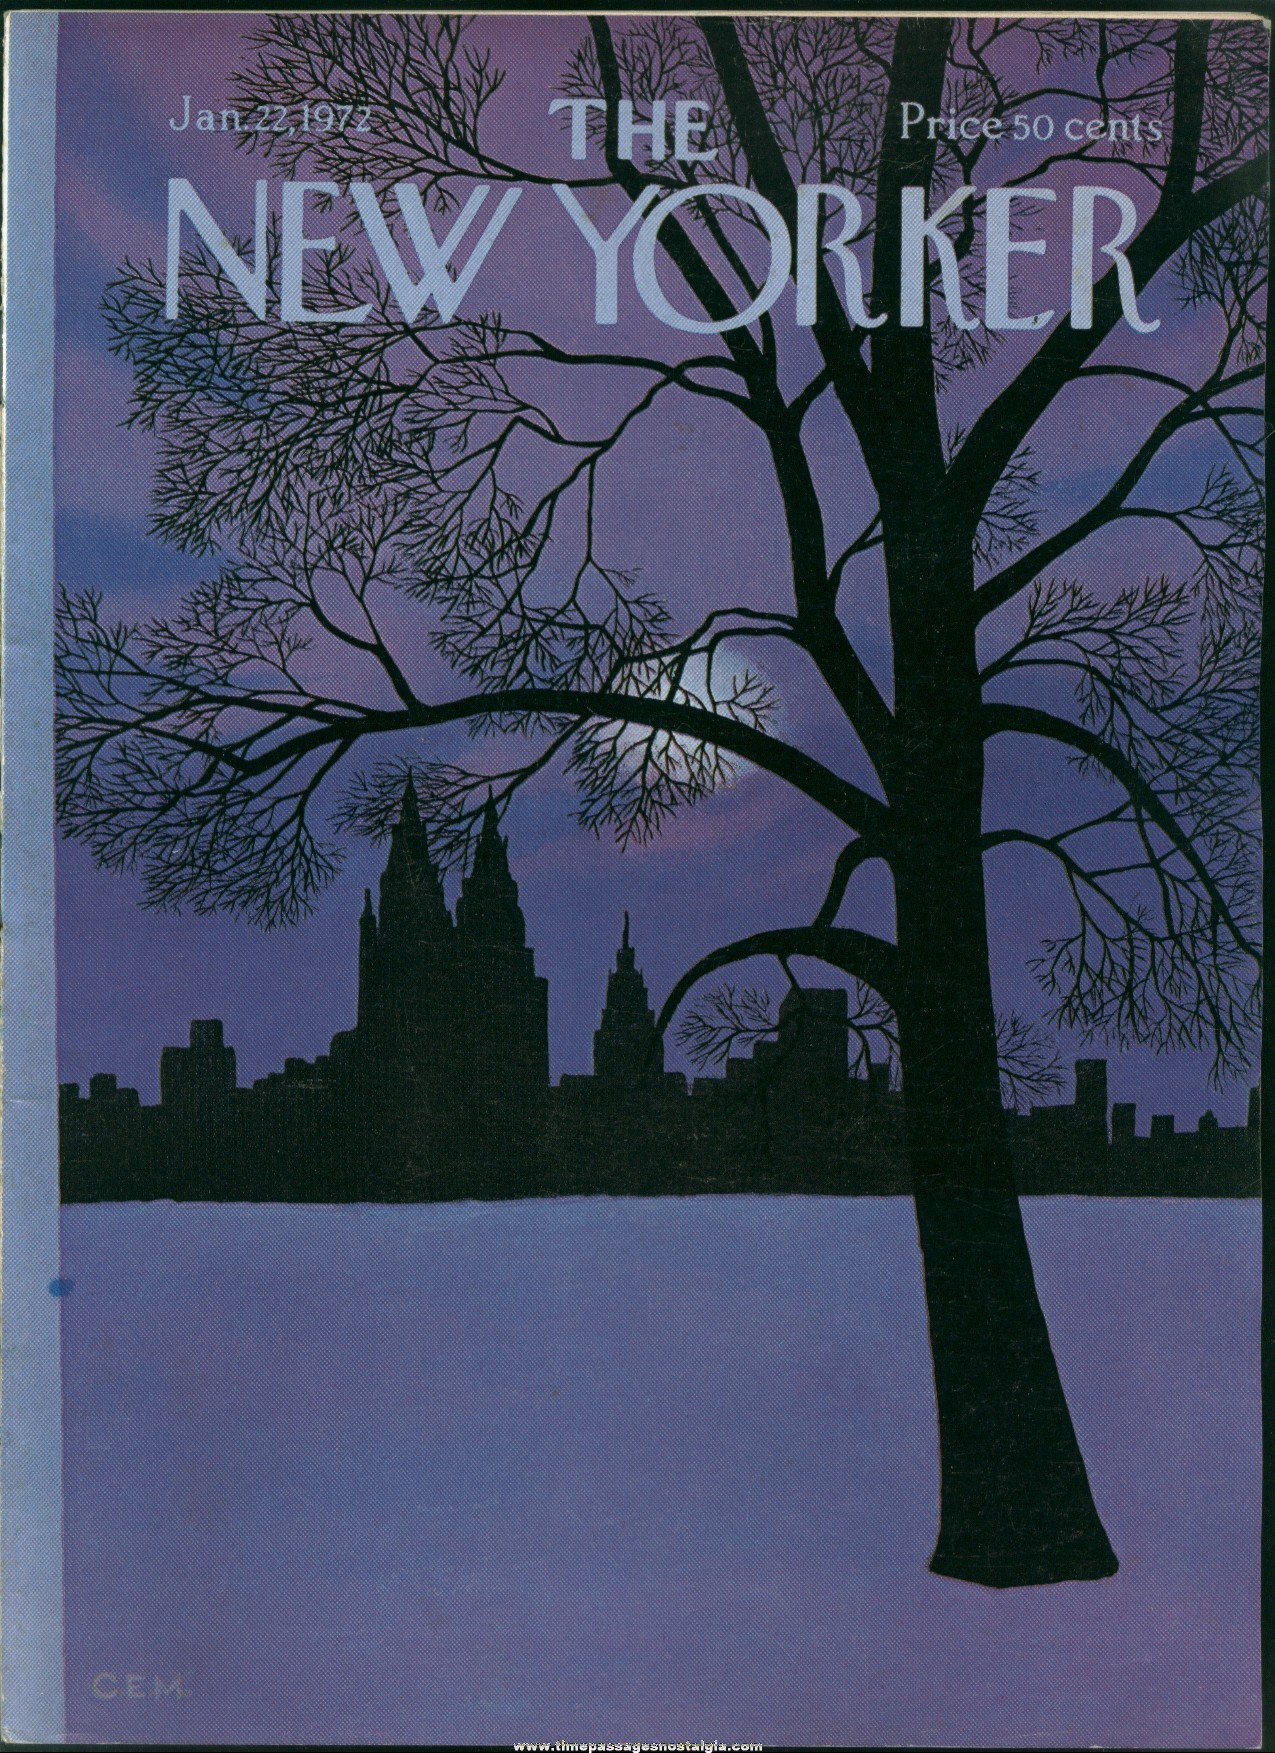 New Yorker Magazine - January 22, 1972 - Cover by Charles E. Martin